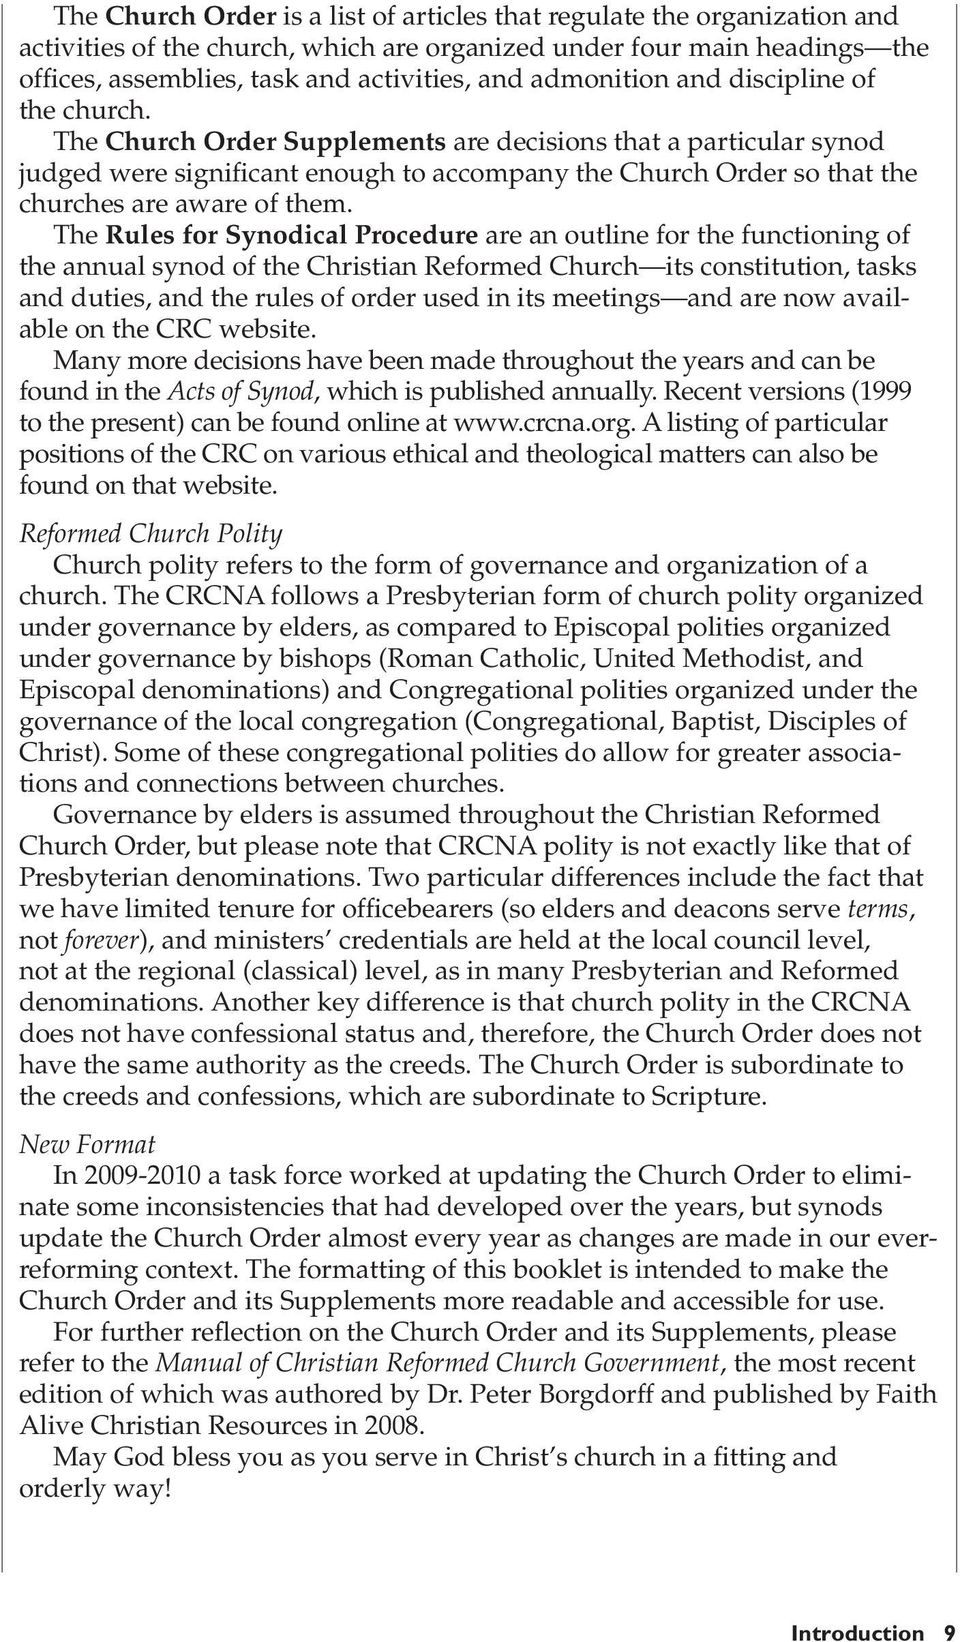 The Church Order Supplements are decisions that a particular synod judged were significant enough to accompany the Church Order so that the churches are aware of them.